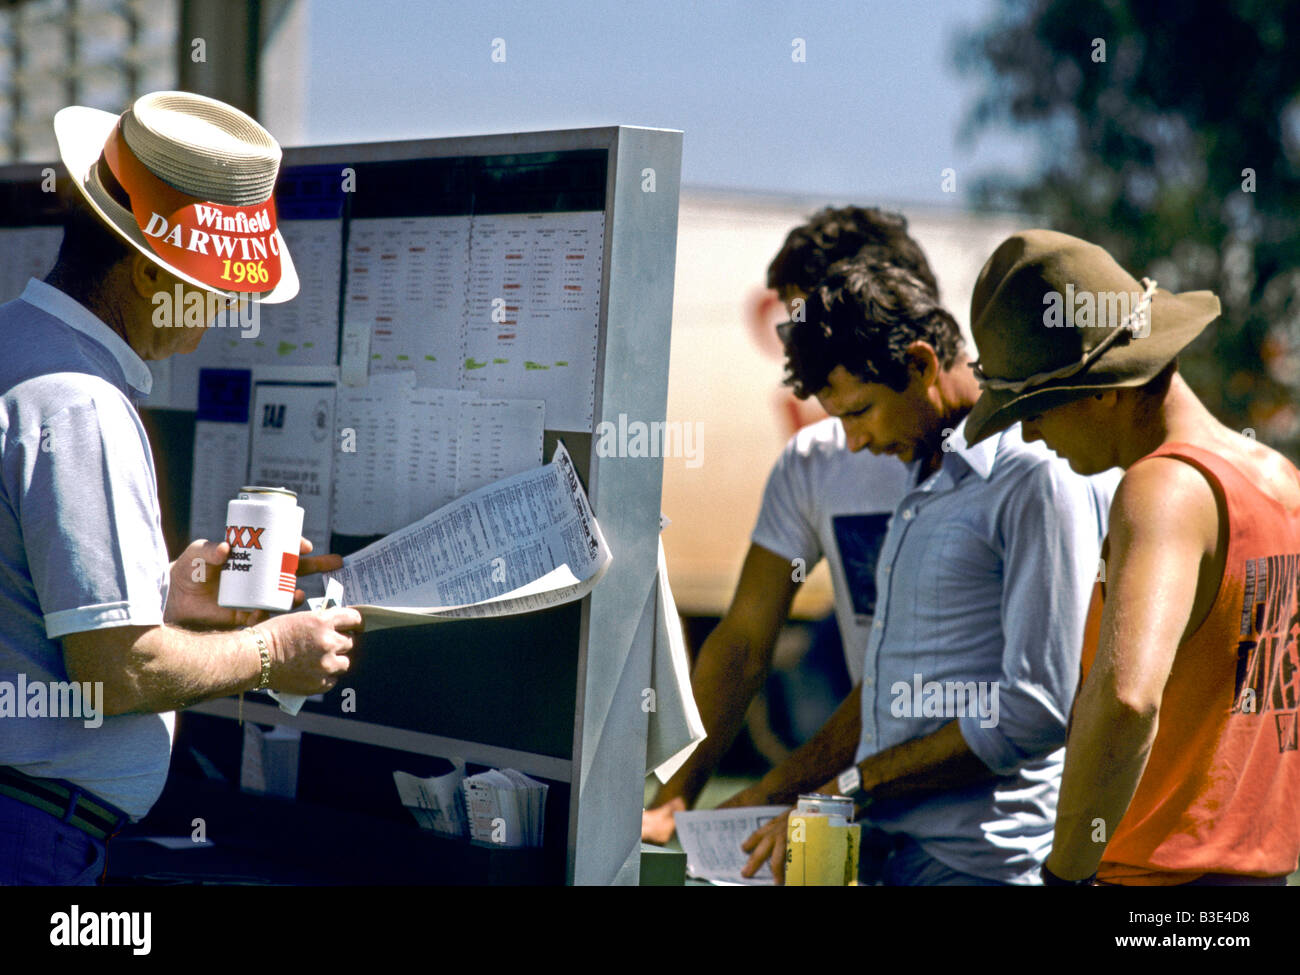 MEN ON A SUNNY DAY AND LOOKING AT A BOARD AND RACE CARD AT A HORSE RACE ONE MAN WEARS A STRAW BOATER, PERTH 1986 - Stock Image